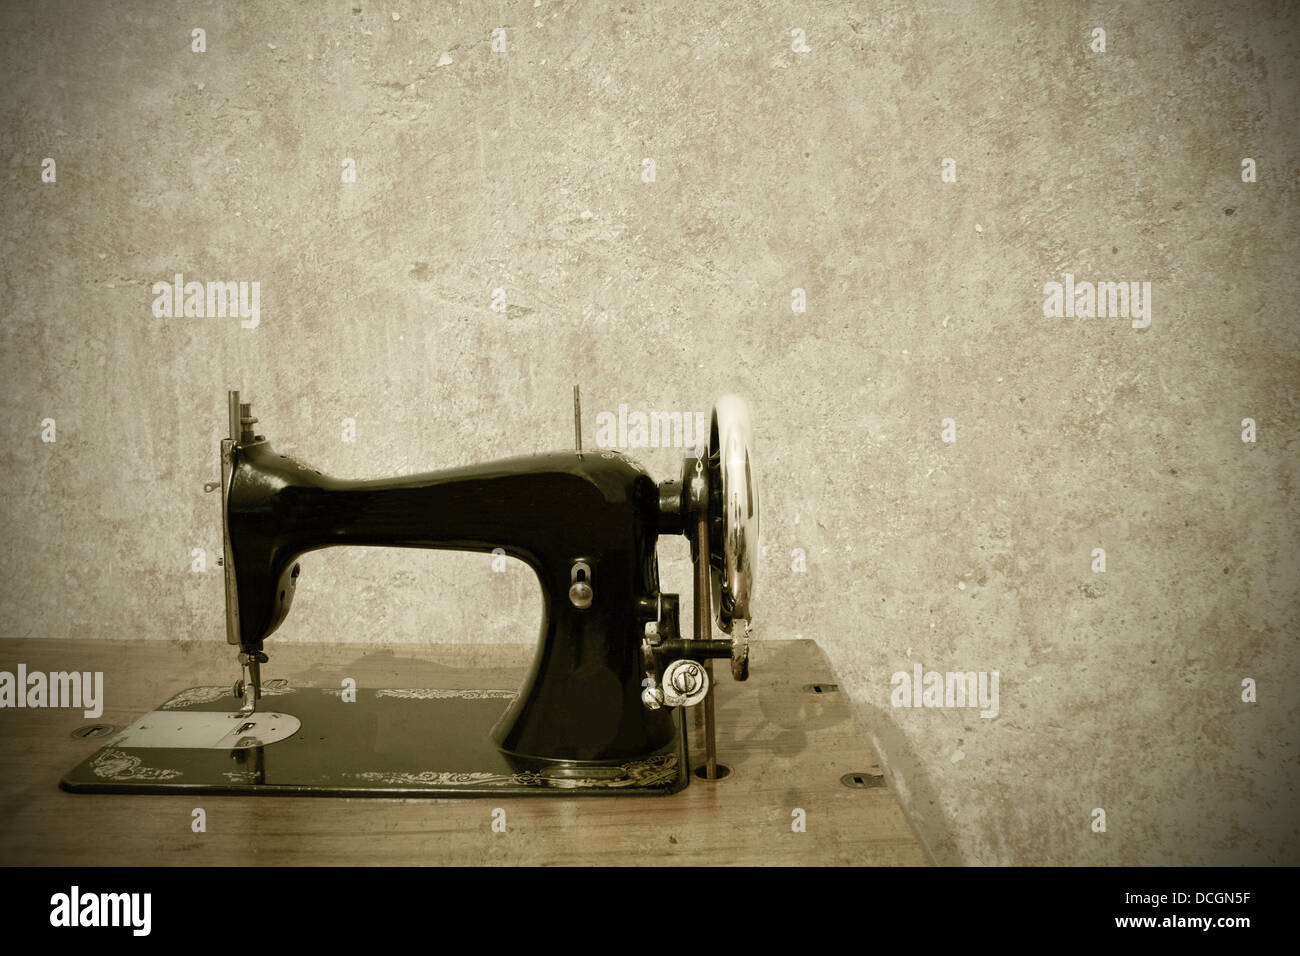 a very old sewing machine on a white background - Stock Image